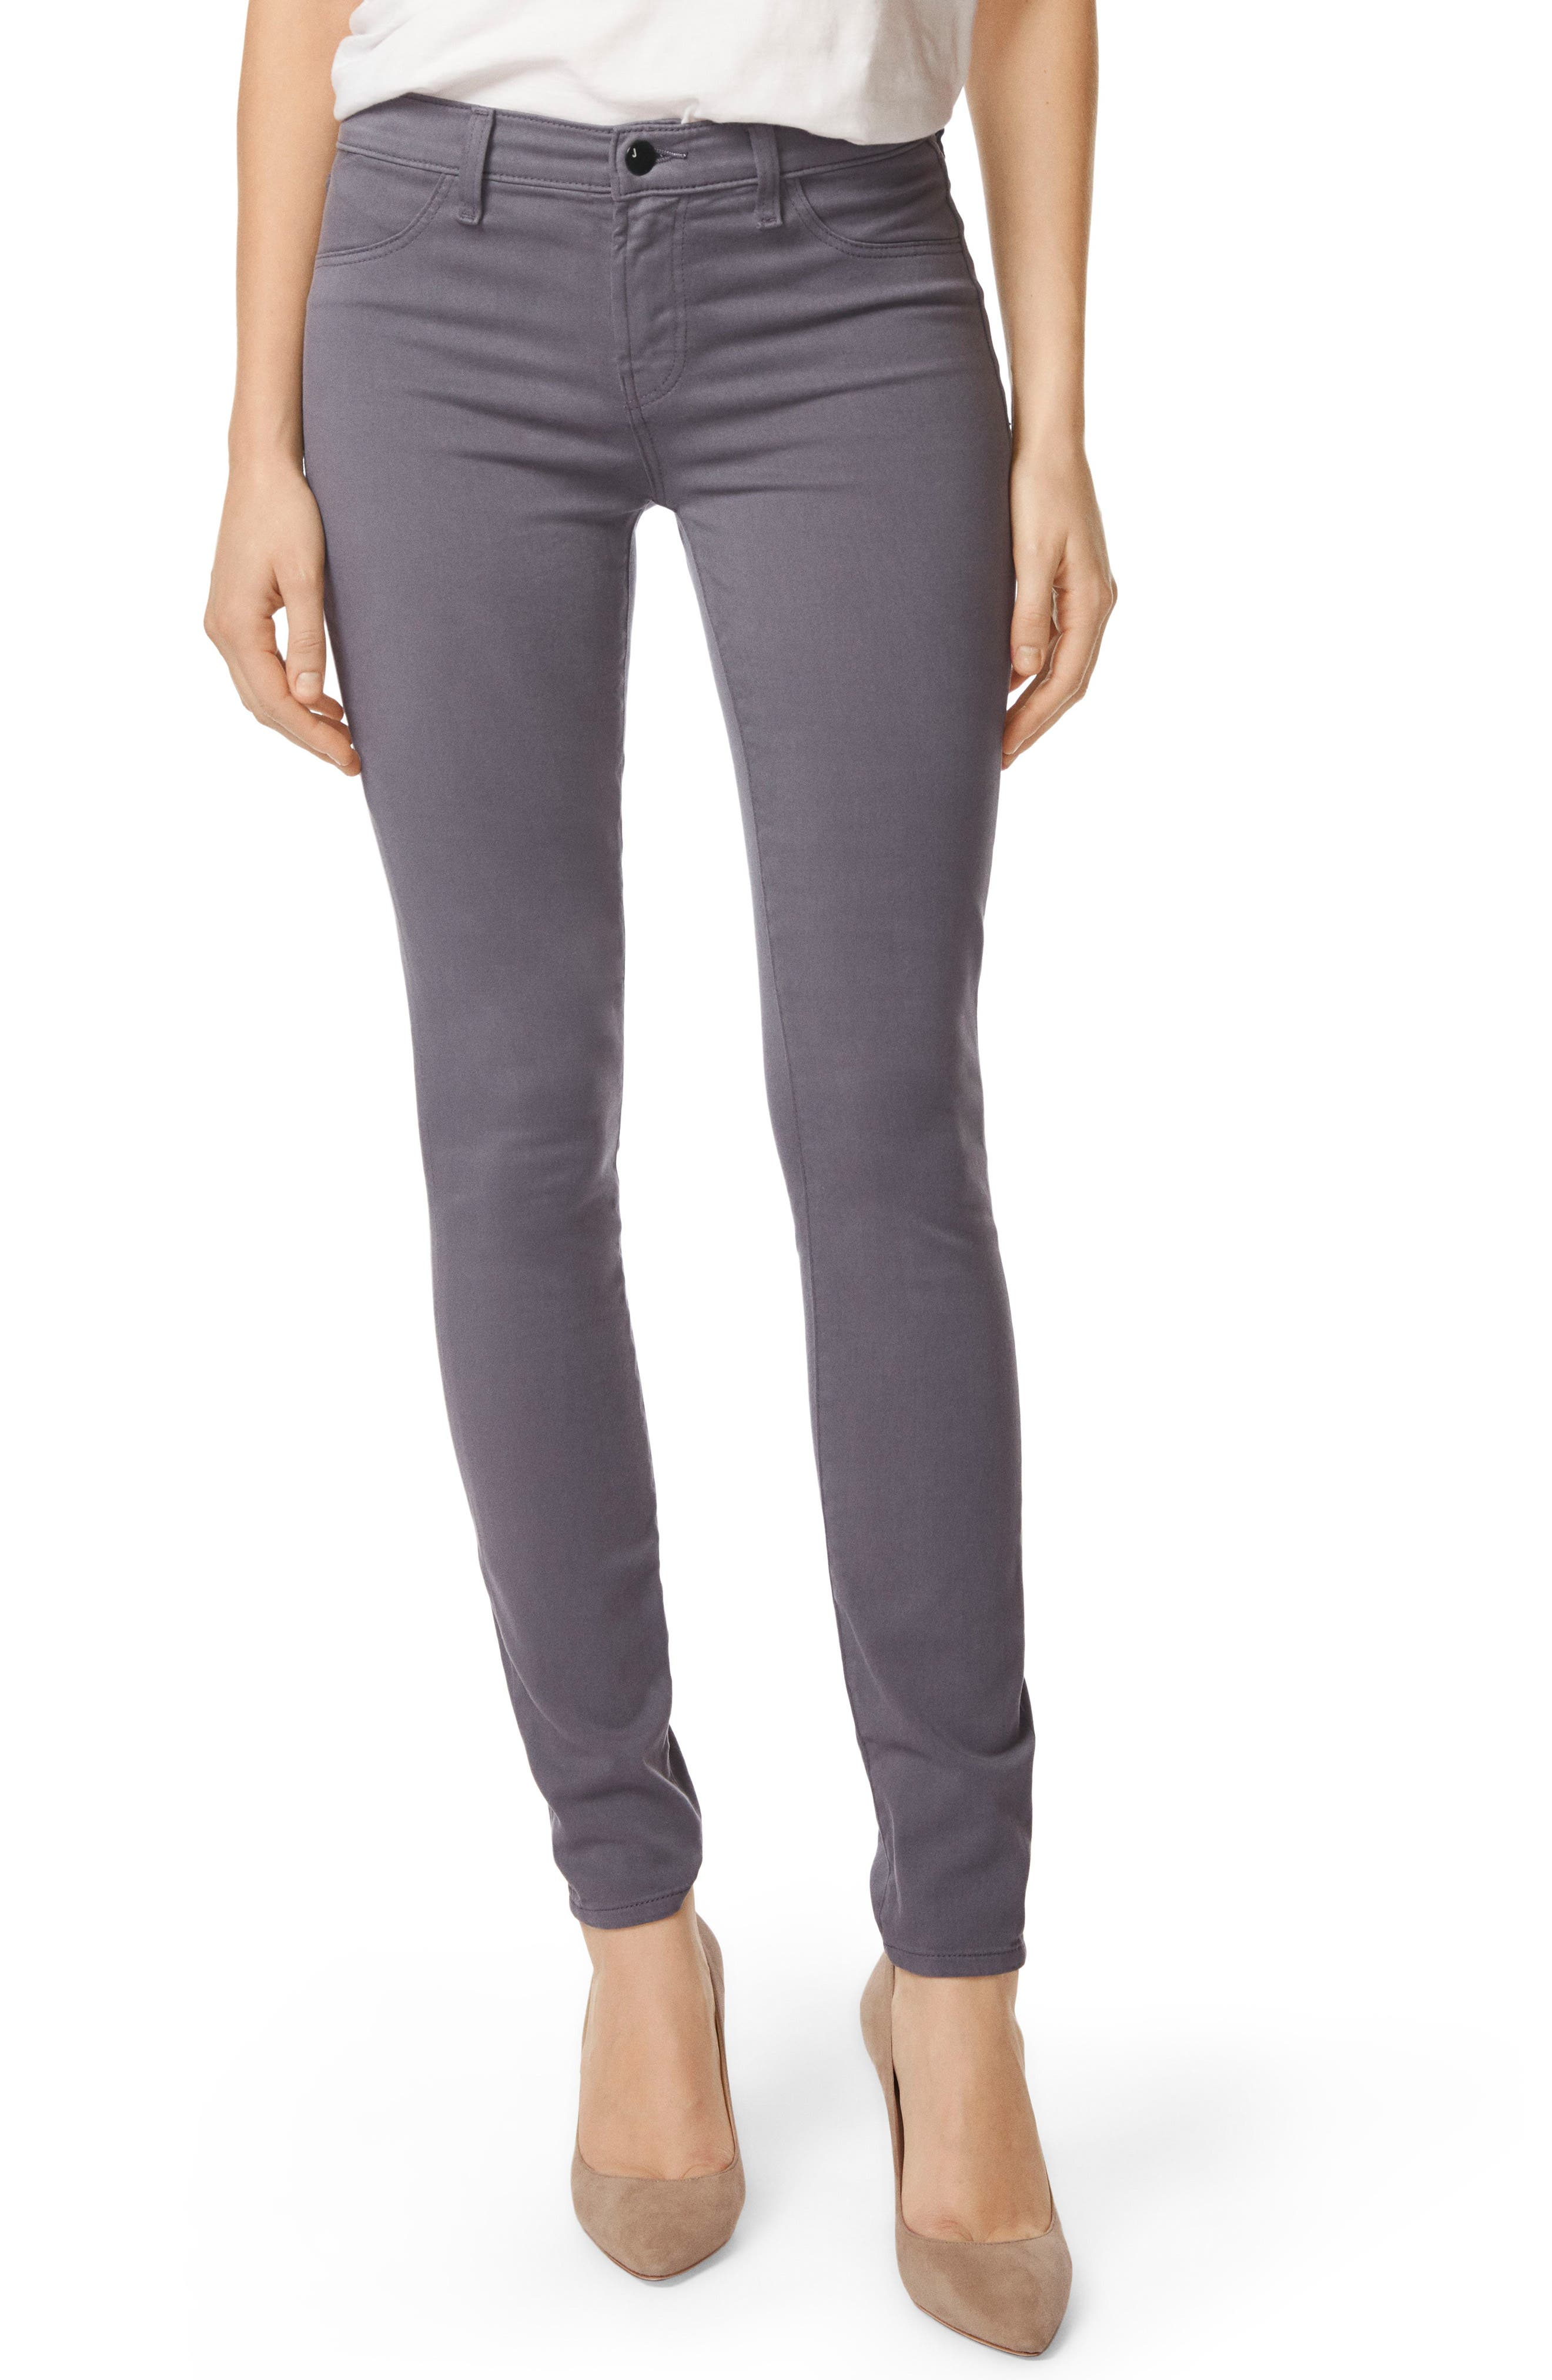 485 Mid Rise Skinny Jeans,                         Main,                         color, VOLCANIC ASH